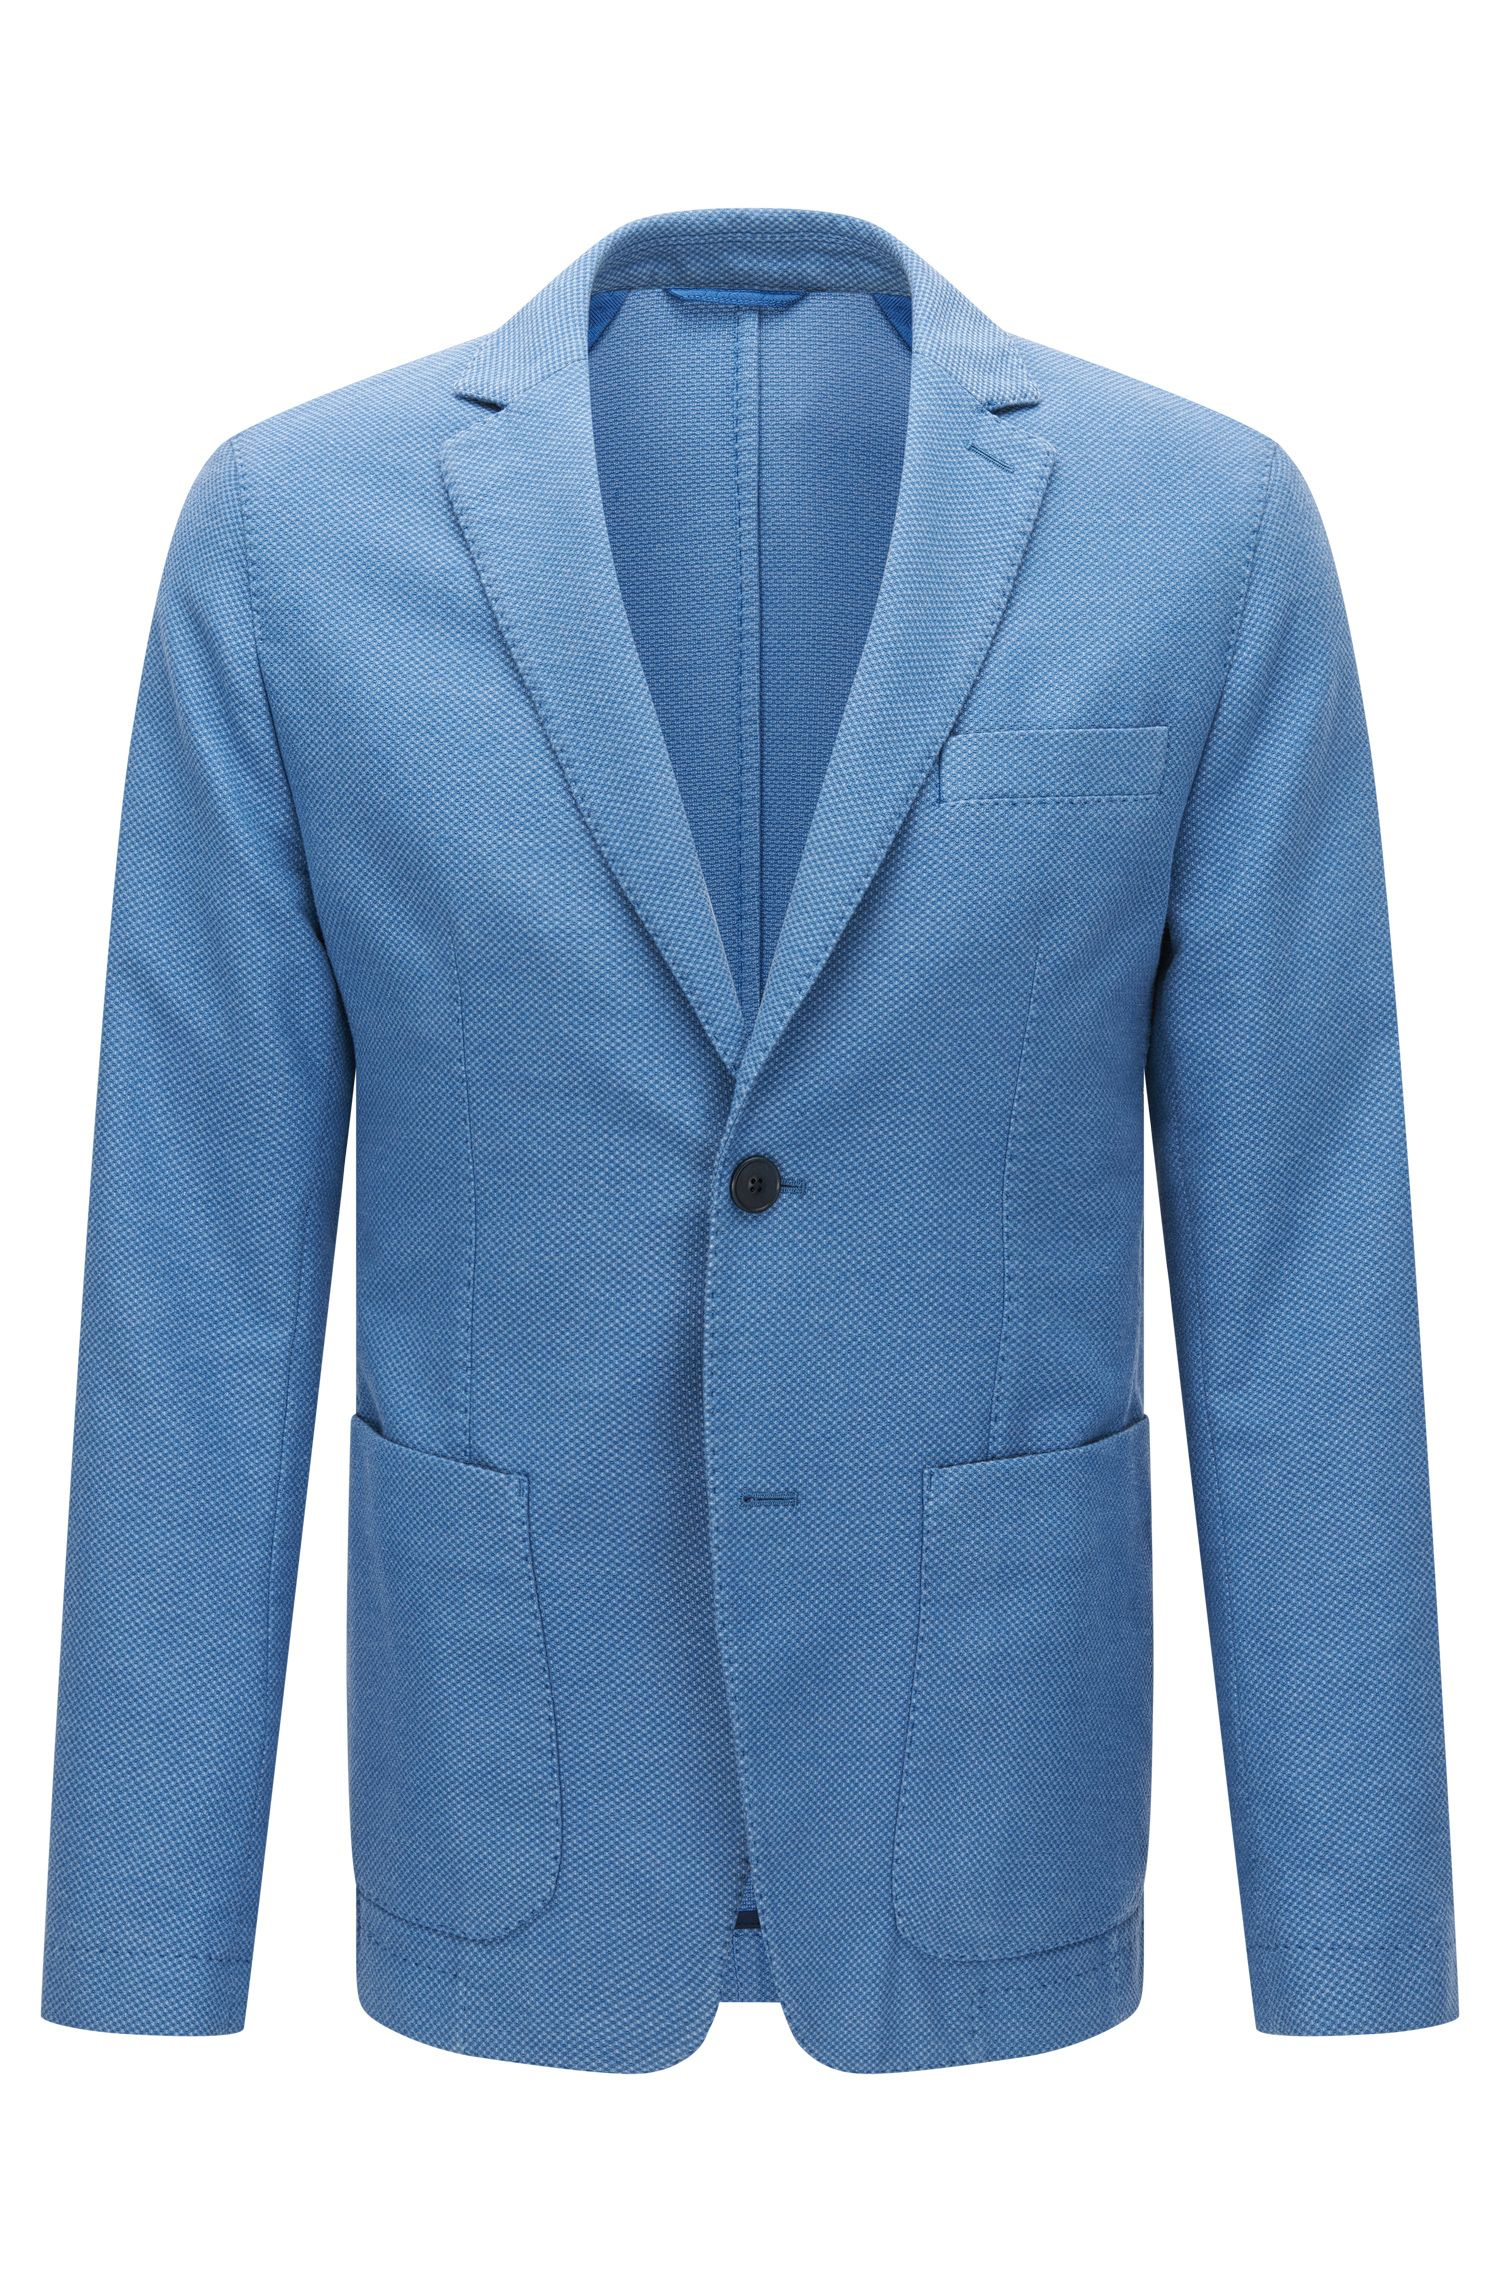 Birdseye Cotton Blend Sport Coat | Niells D